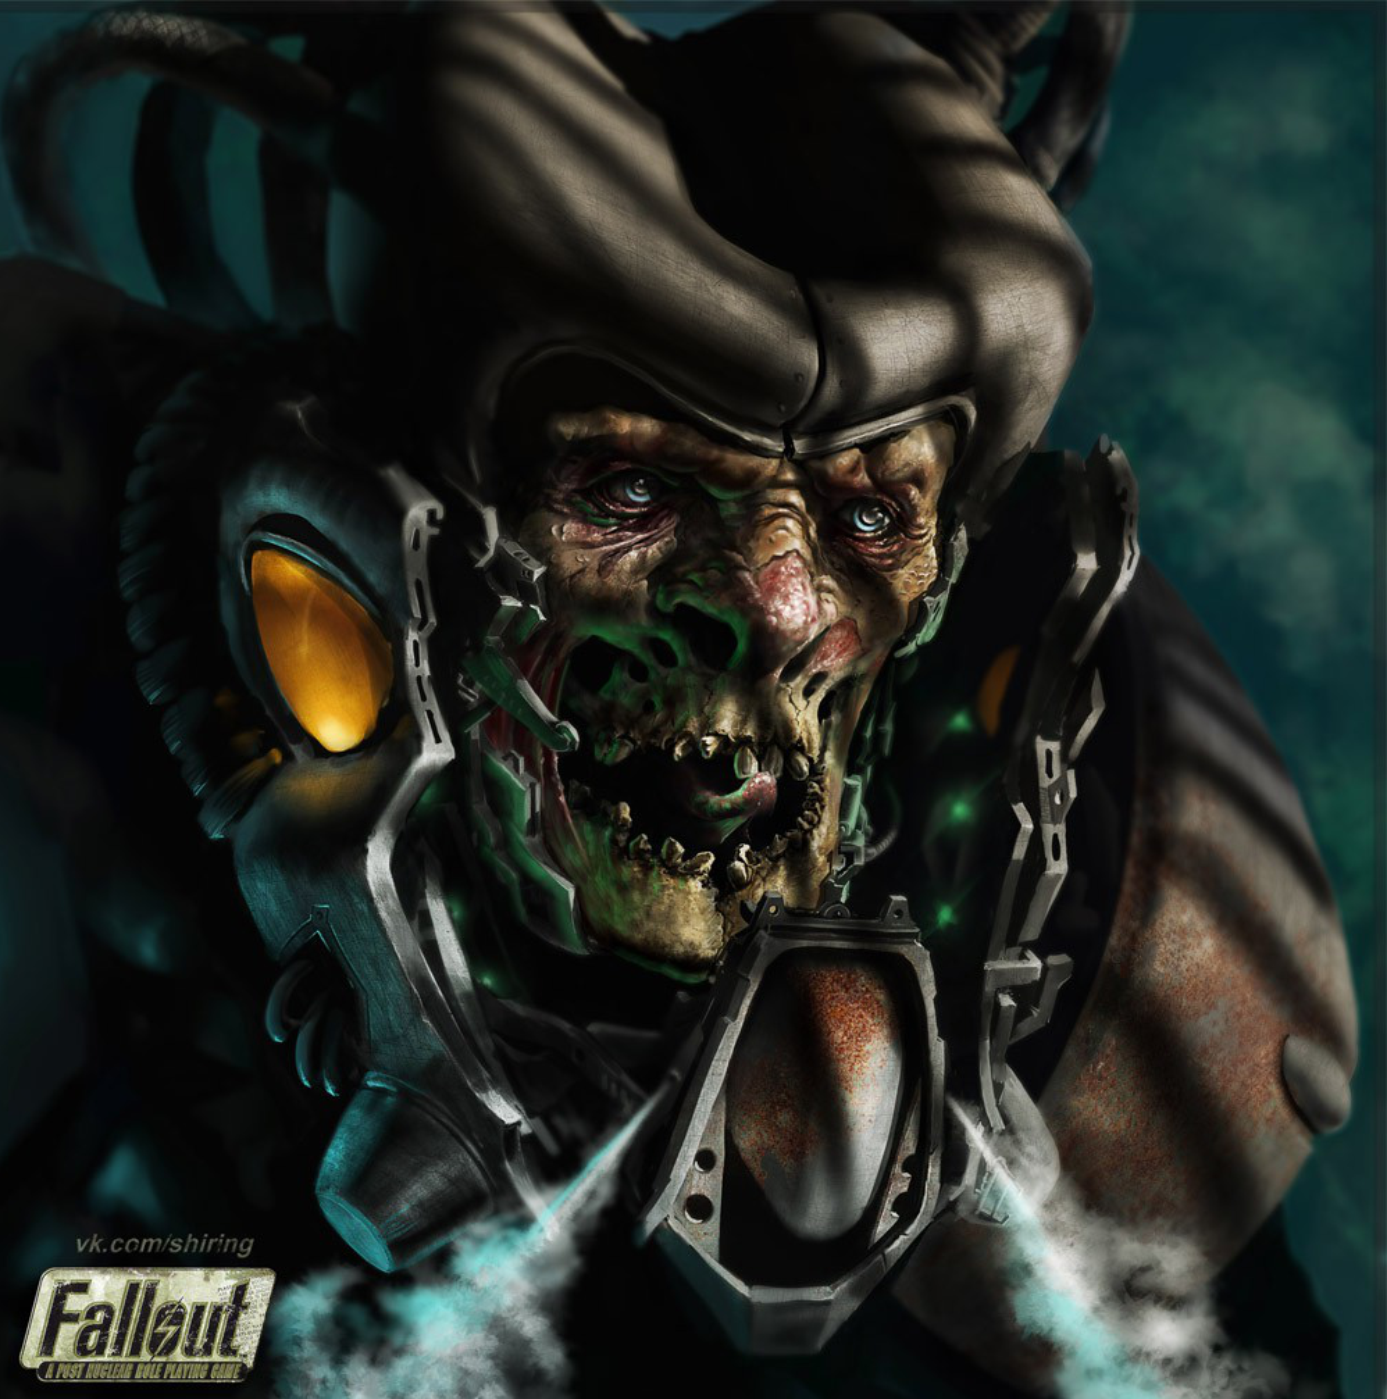 Without Mask by Gore-Shiring Fallout 2 fan-art capturing Frank